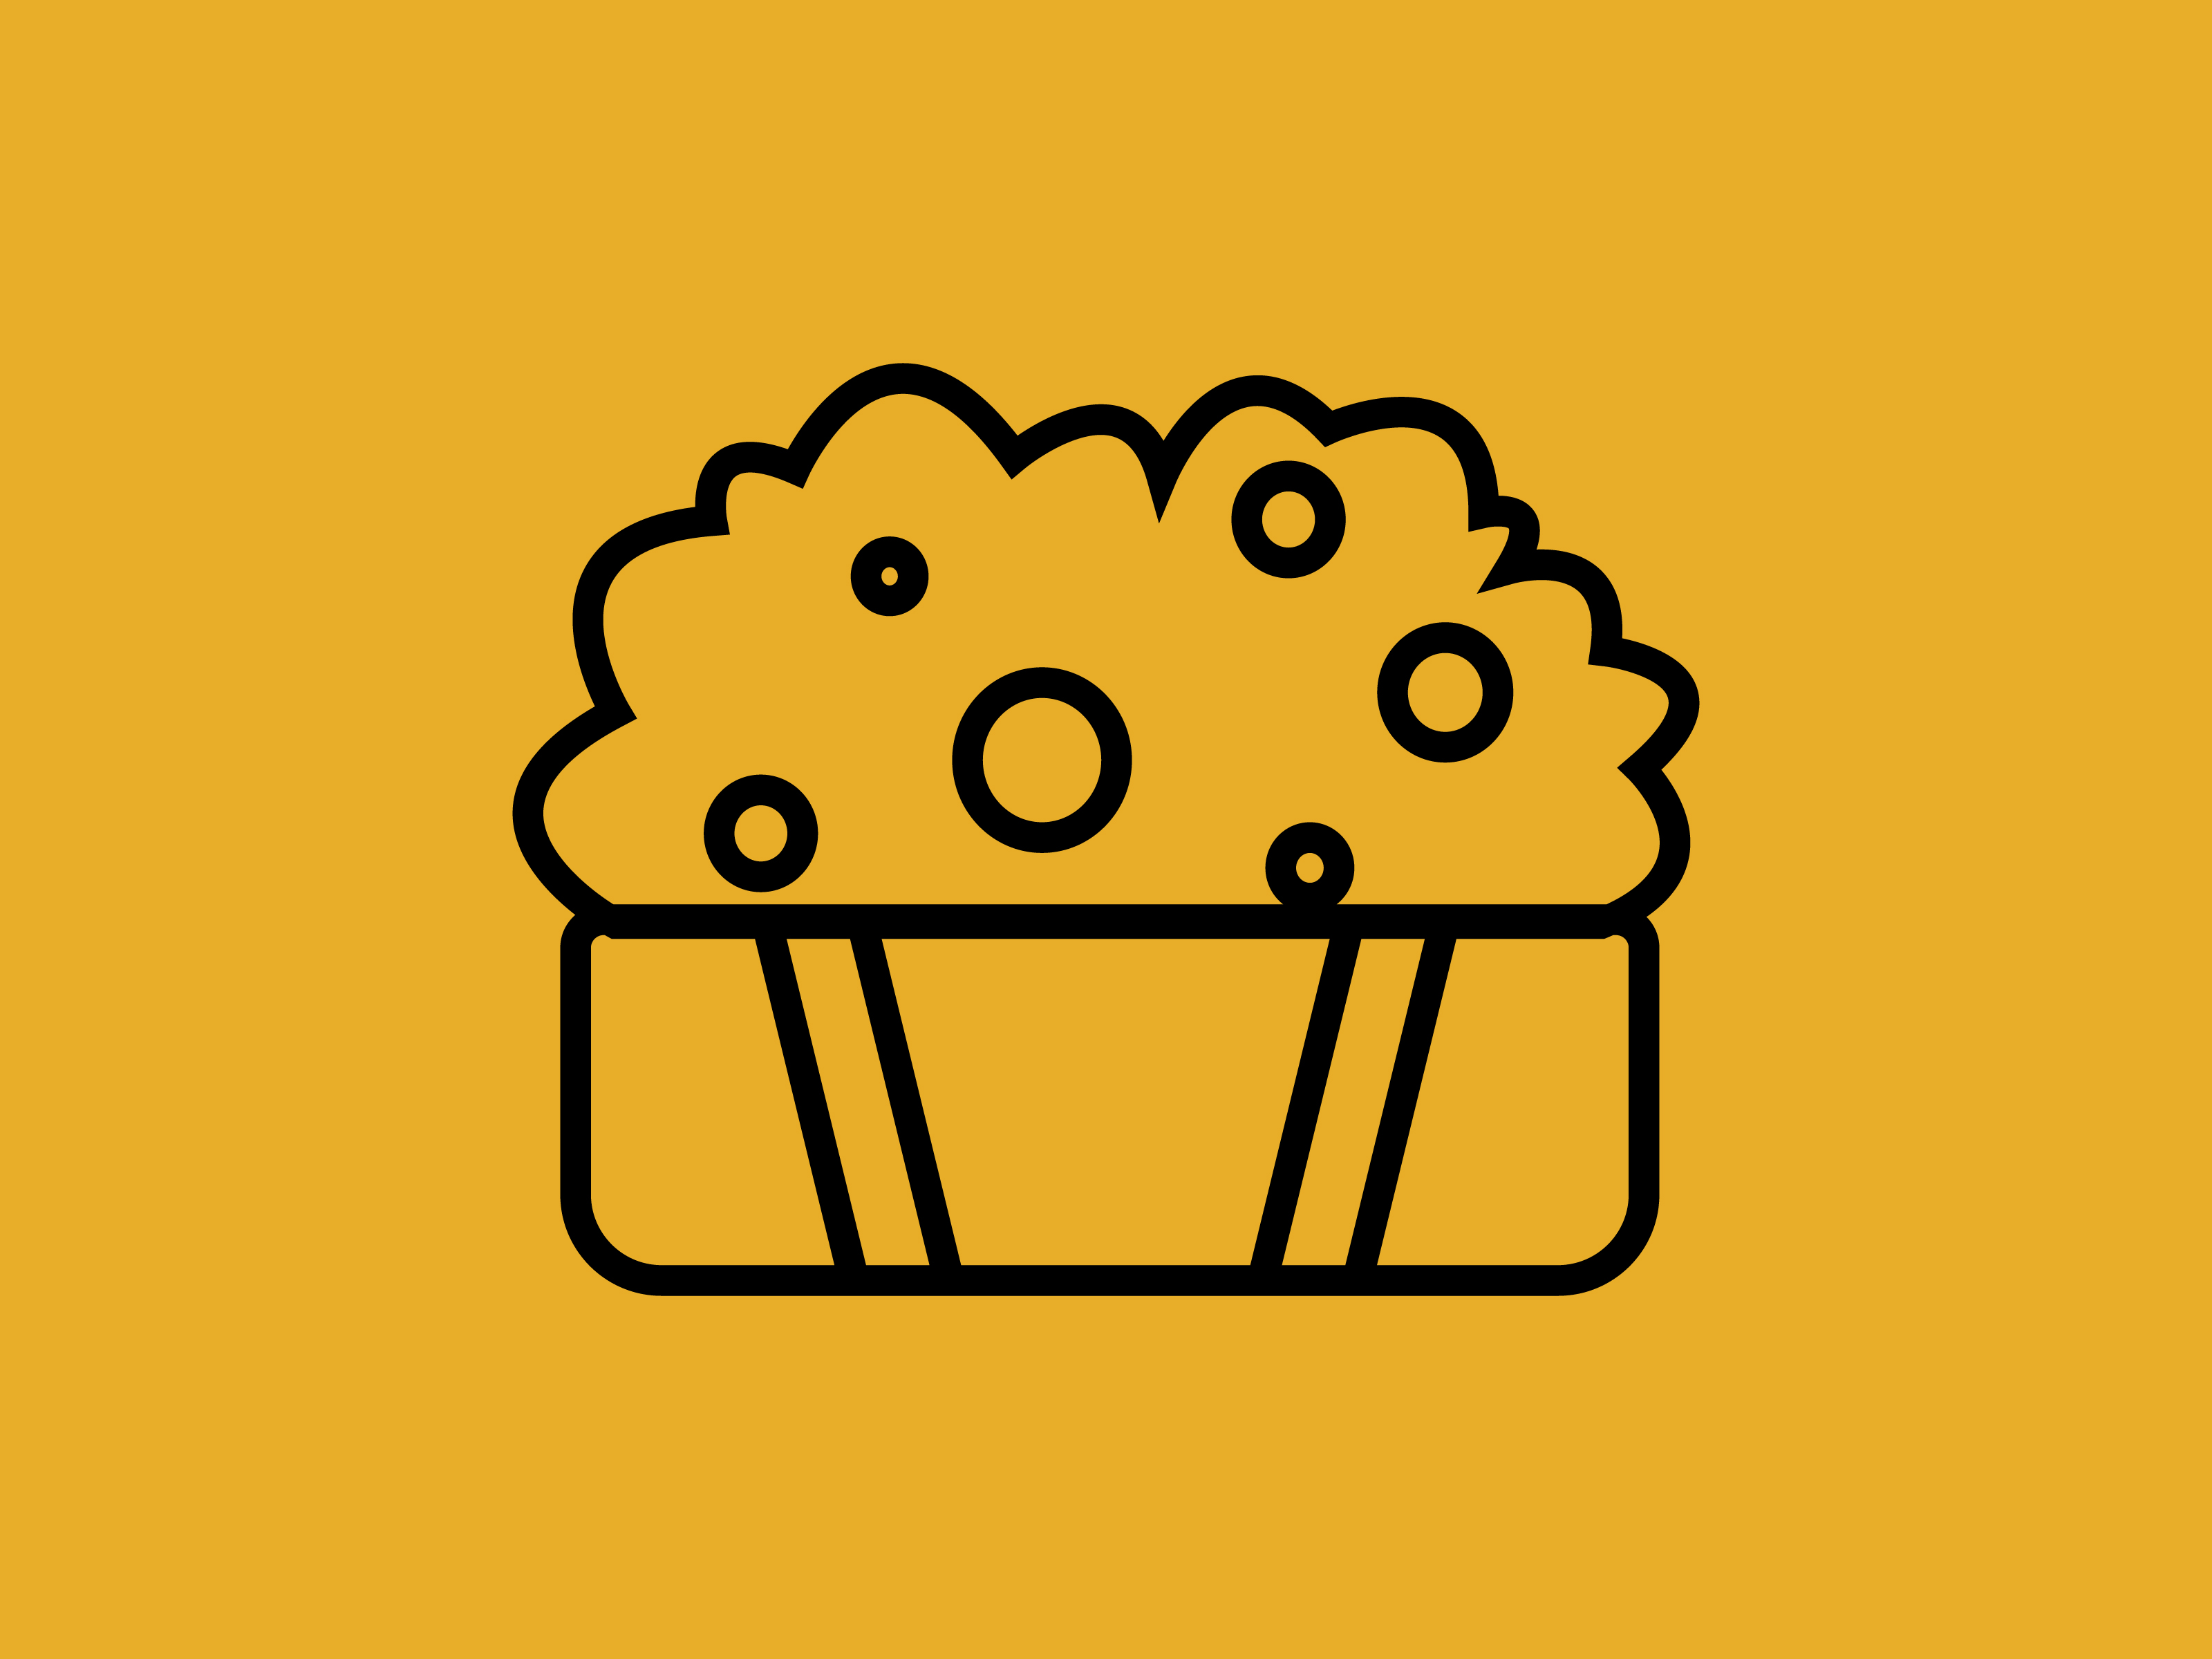 Download Free Small Popcorn Icon Only Outline Graphic By Meandmydate for Cricut Explore, Silhouette and other cutting machines.